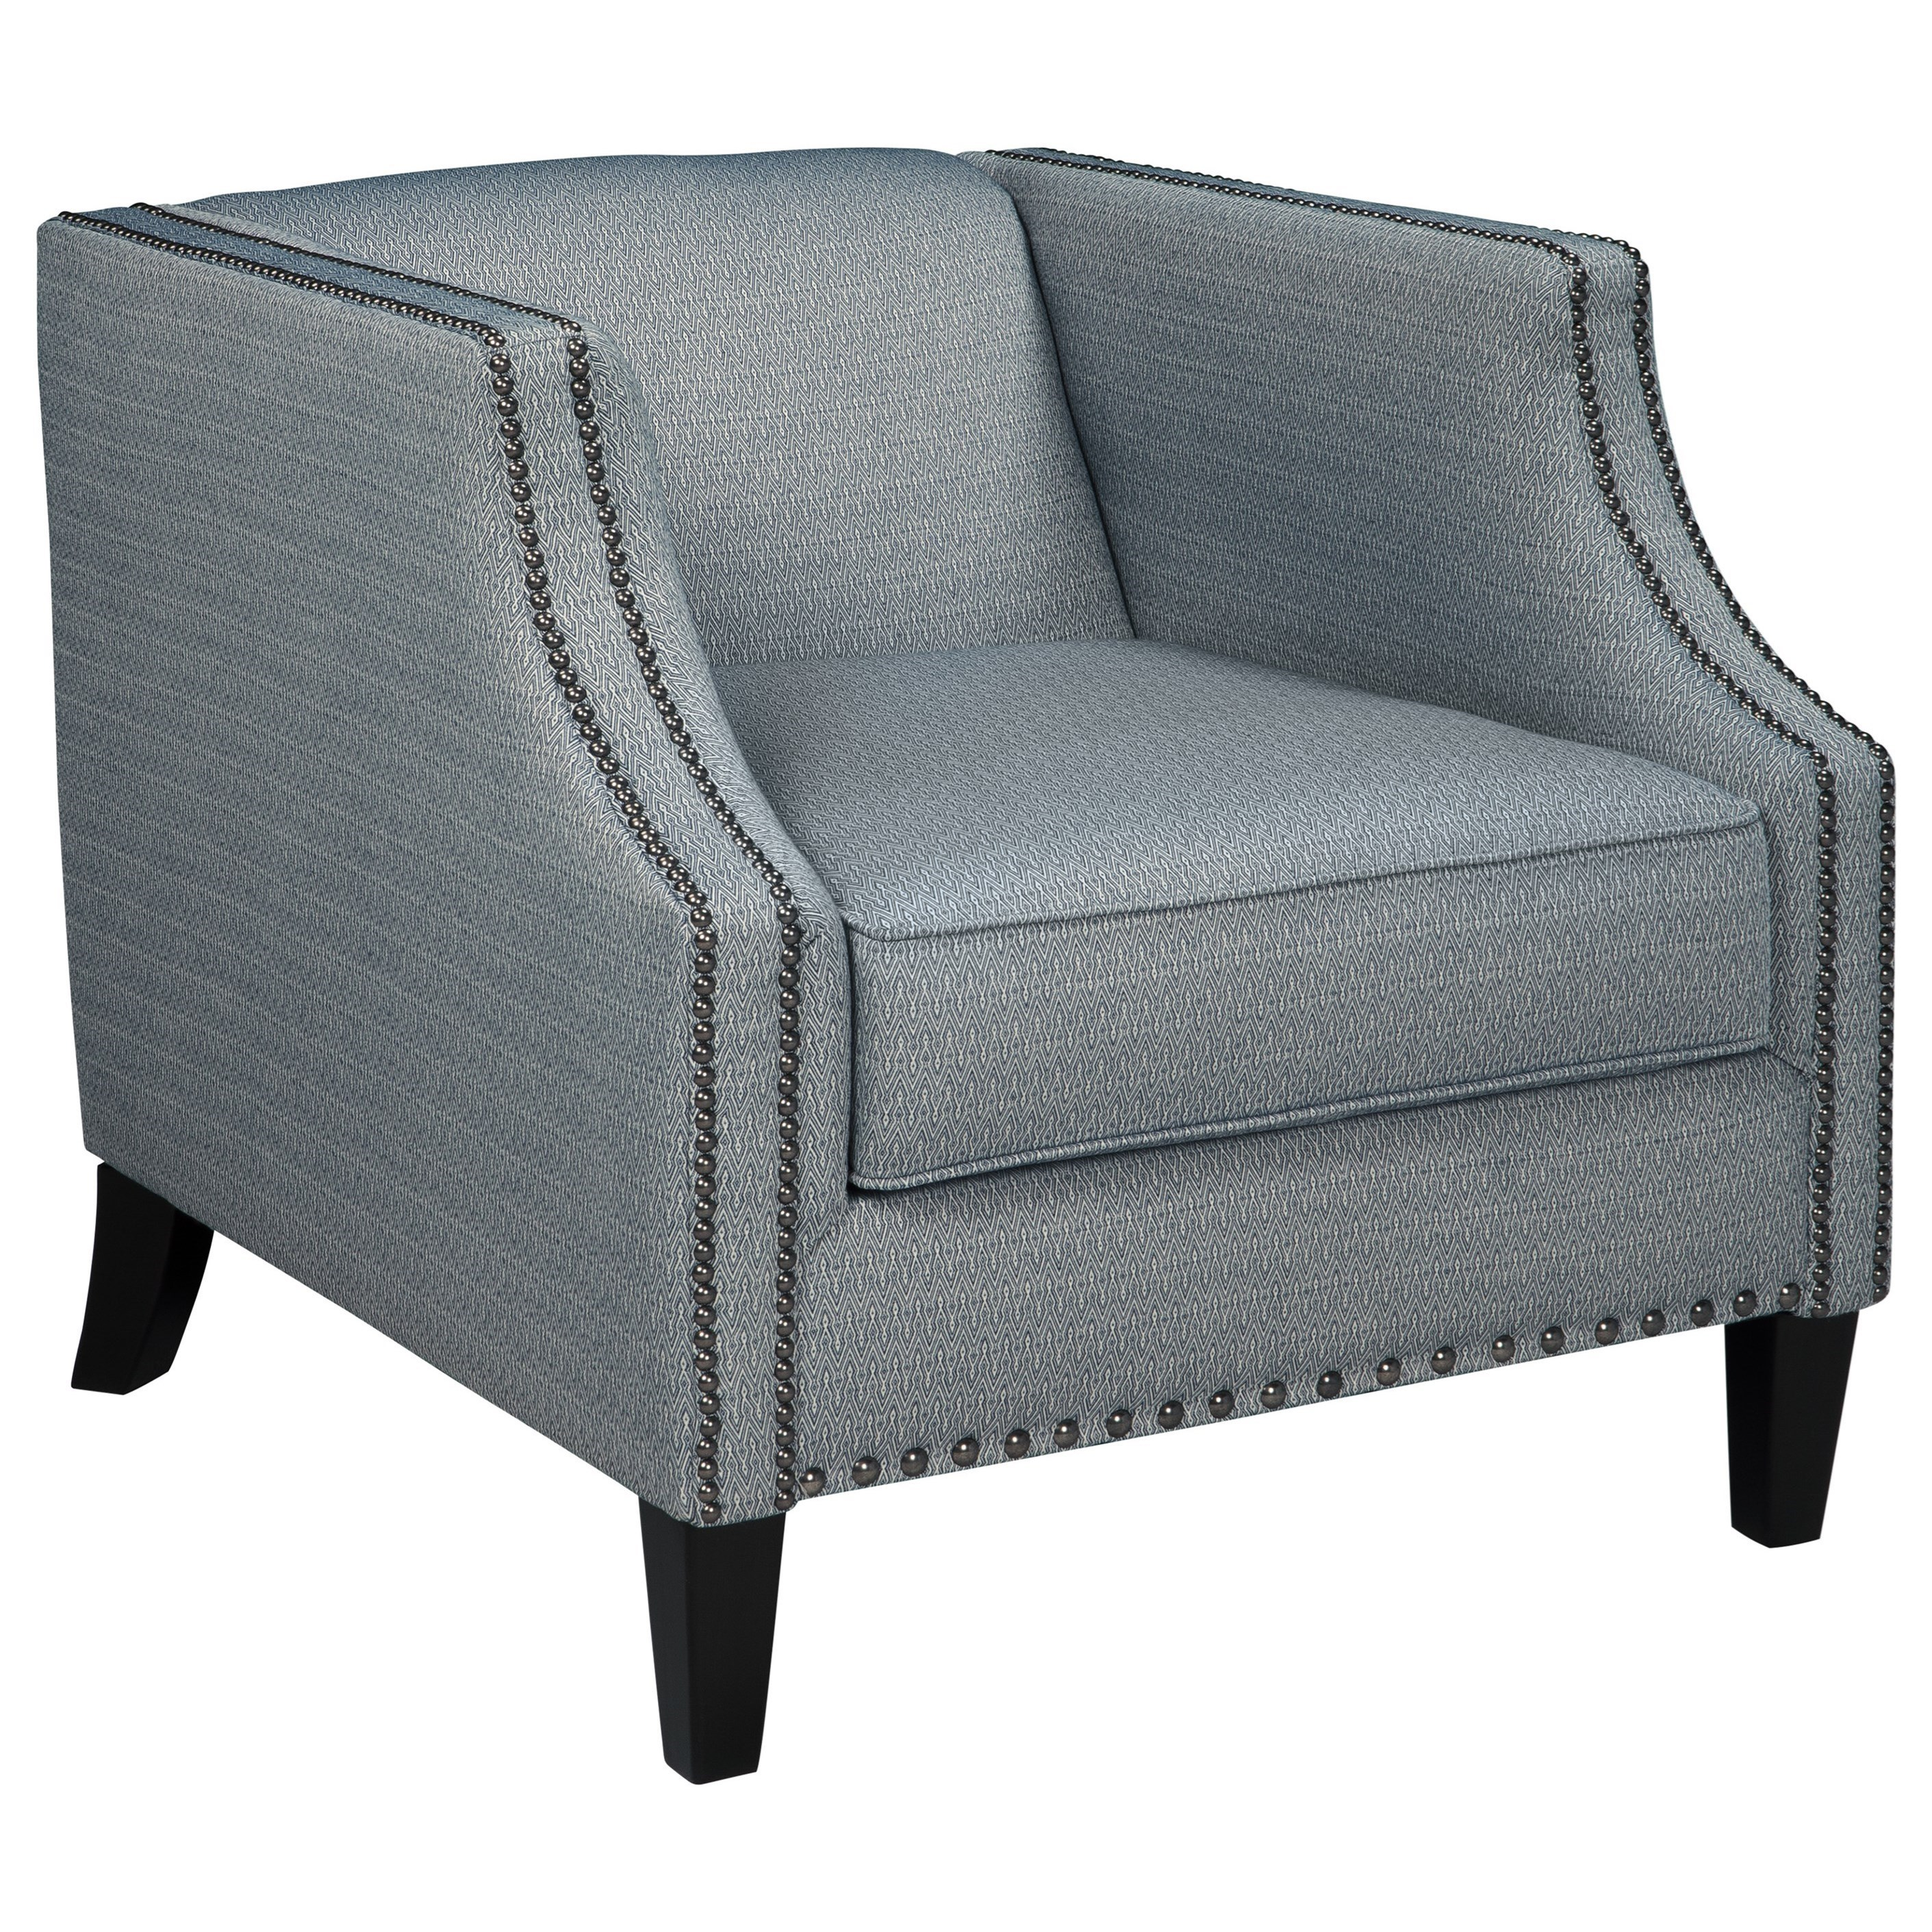 Attractive Benchcraft LaVerniaAccent Chair ...